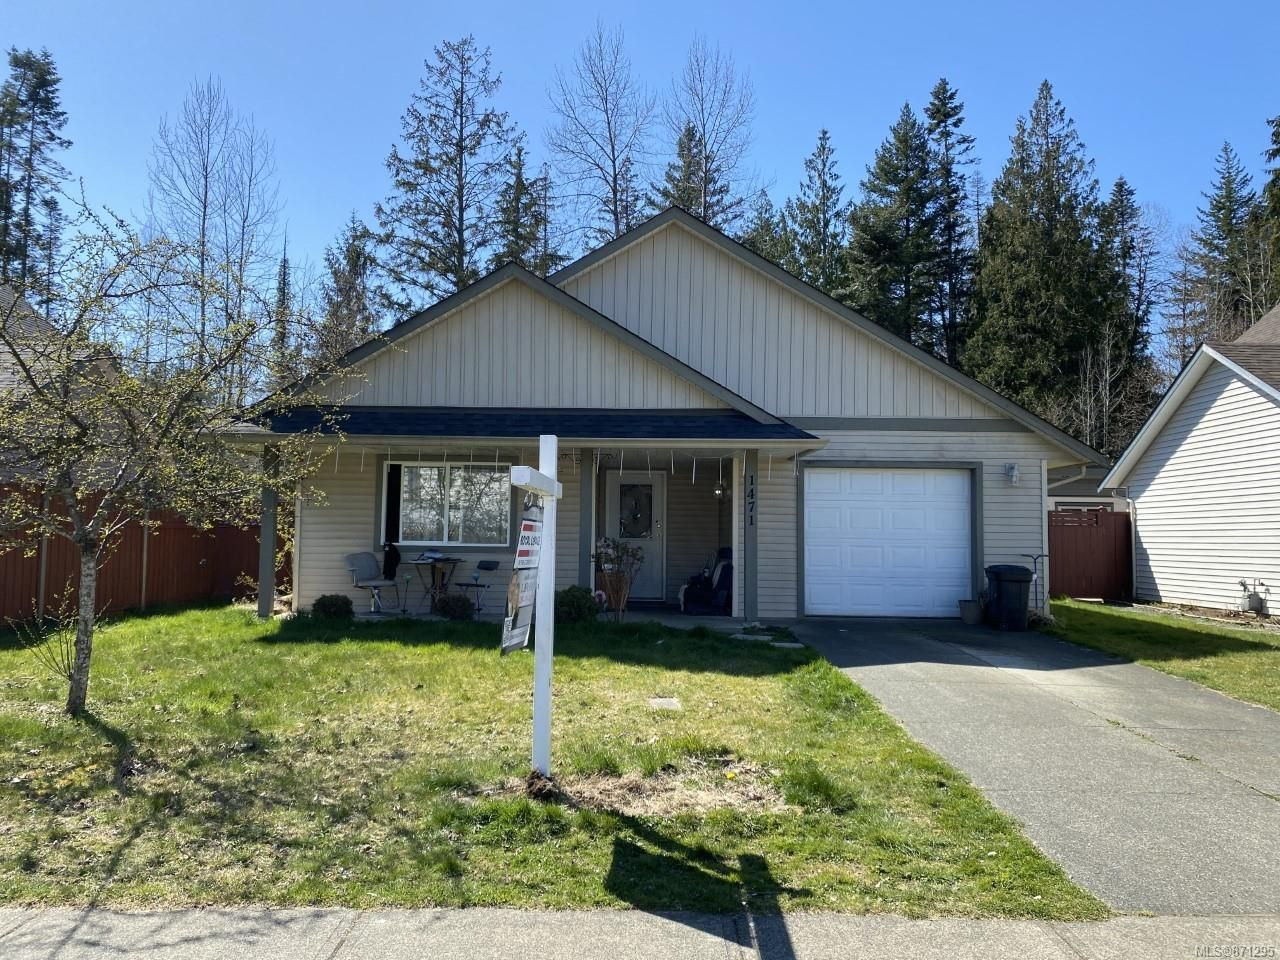 Main Photo: 1471 Krebs Cres in : CV Courtenay City House for sale (Comox Valley)  : MLS®# 871295